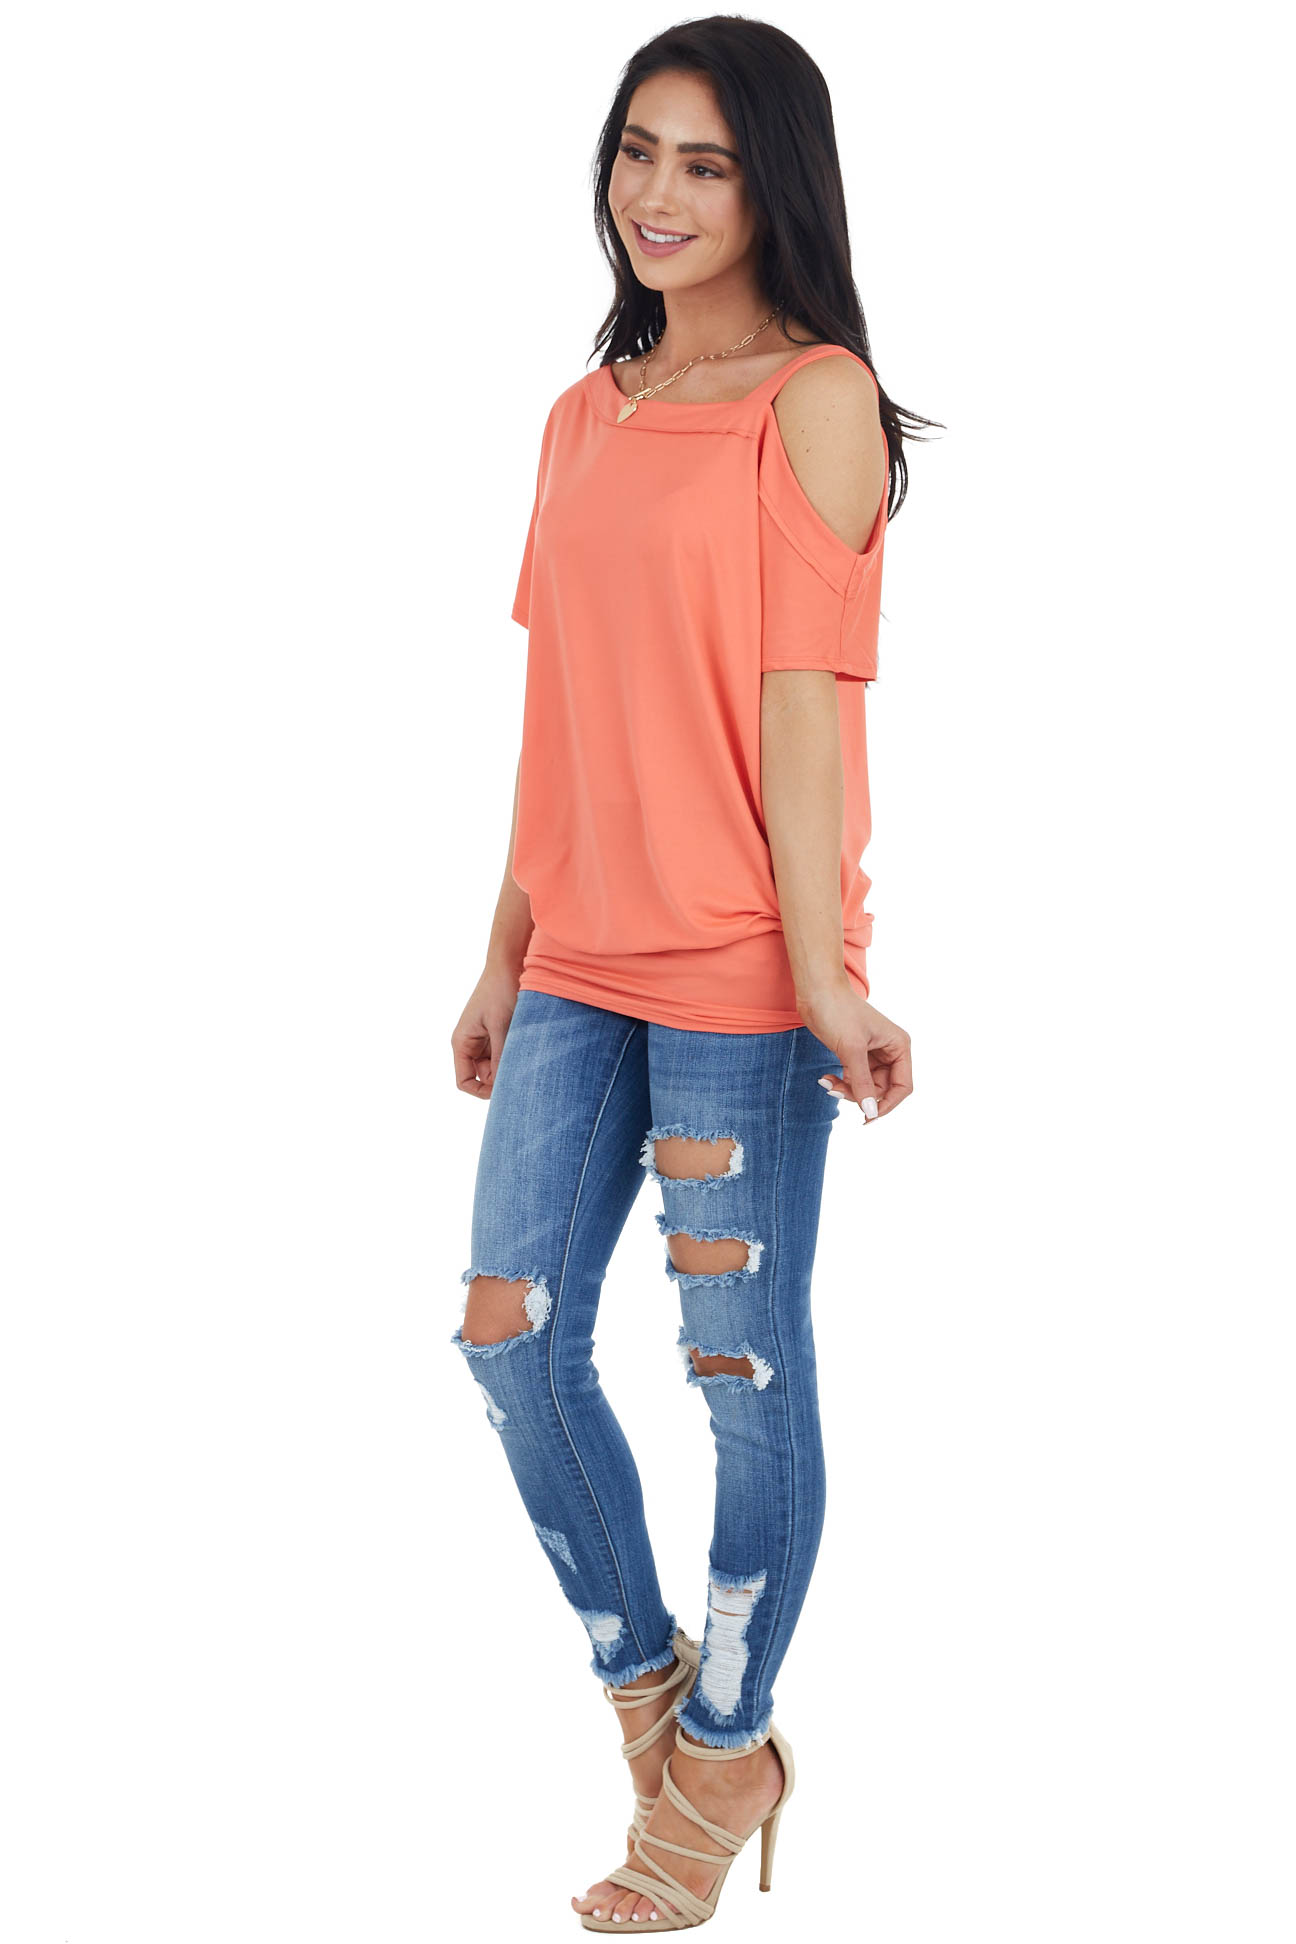 Bright Coral Knit Tunic Top with Single Cold Shoulder